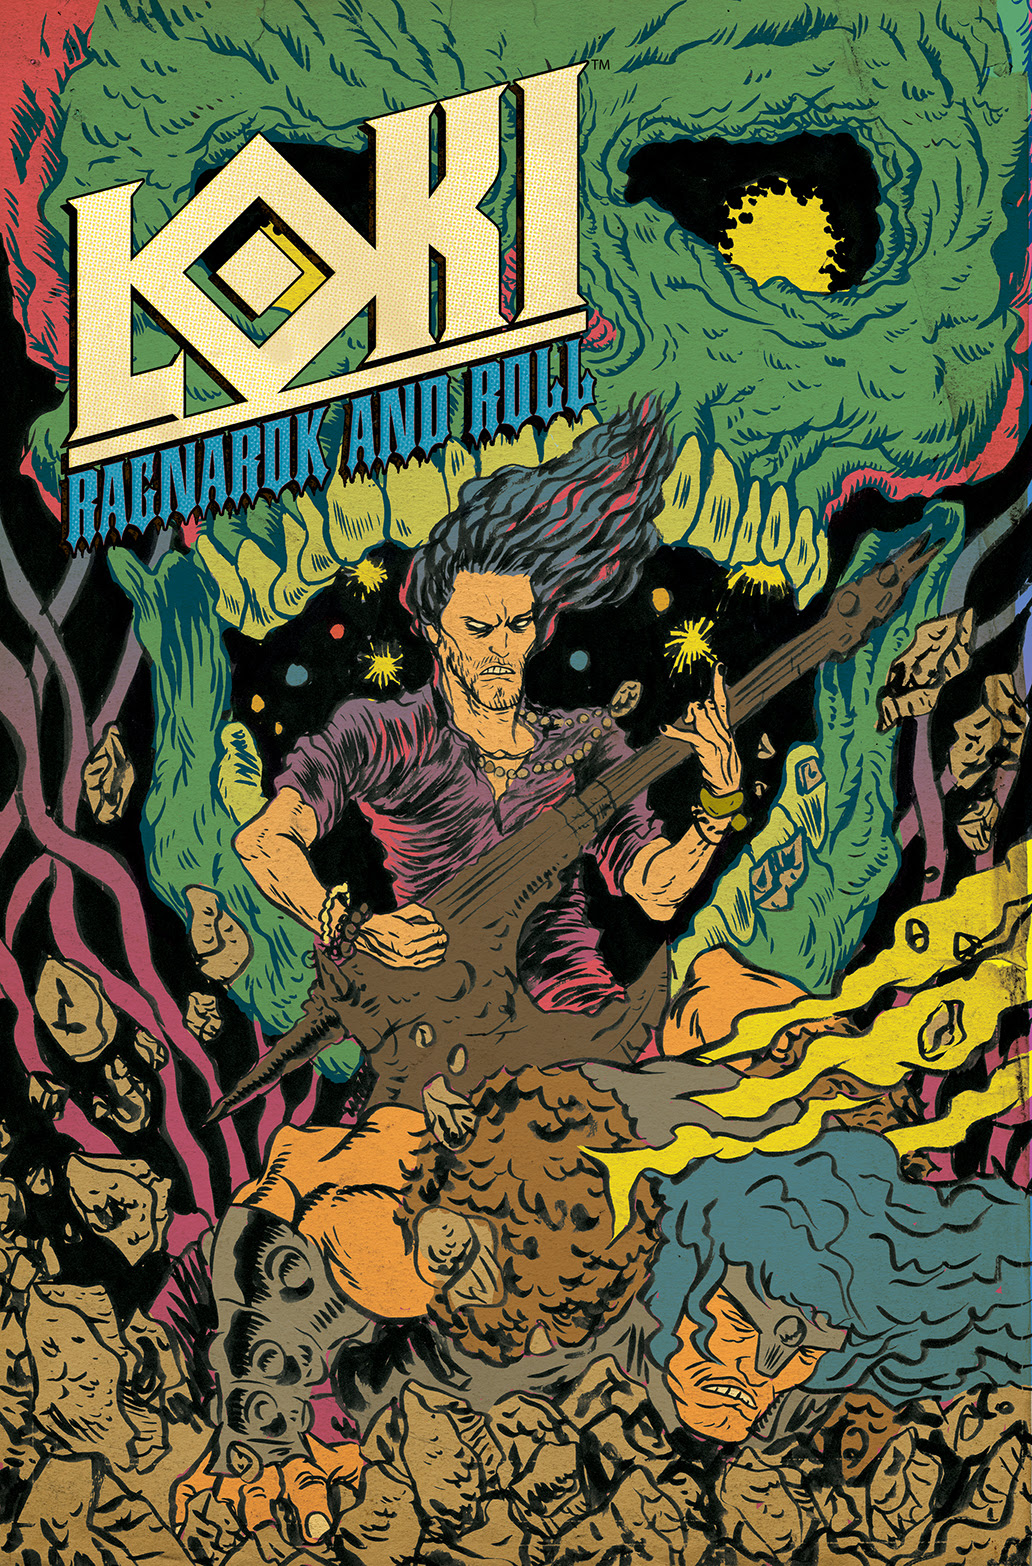 LOKI: RAGNAROK AND ROLL #4 Cover by Alexis Ziritt